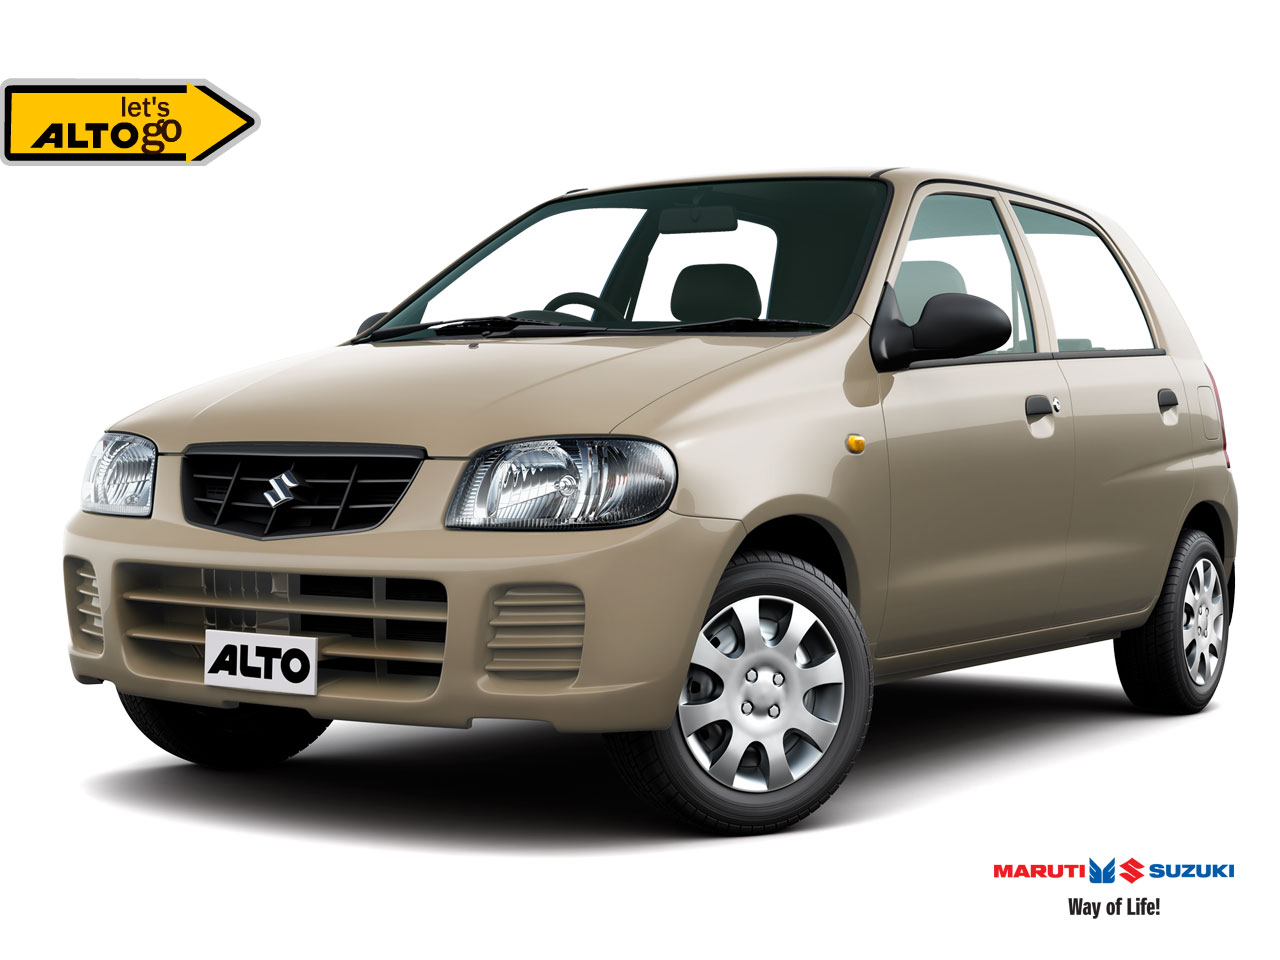 Best Gas Prices >> AUTOZONE: MARUTI ALTO K10 - SPECIFICATIONS, FEATURES, PRICE